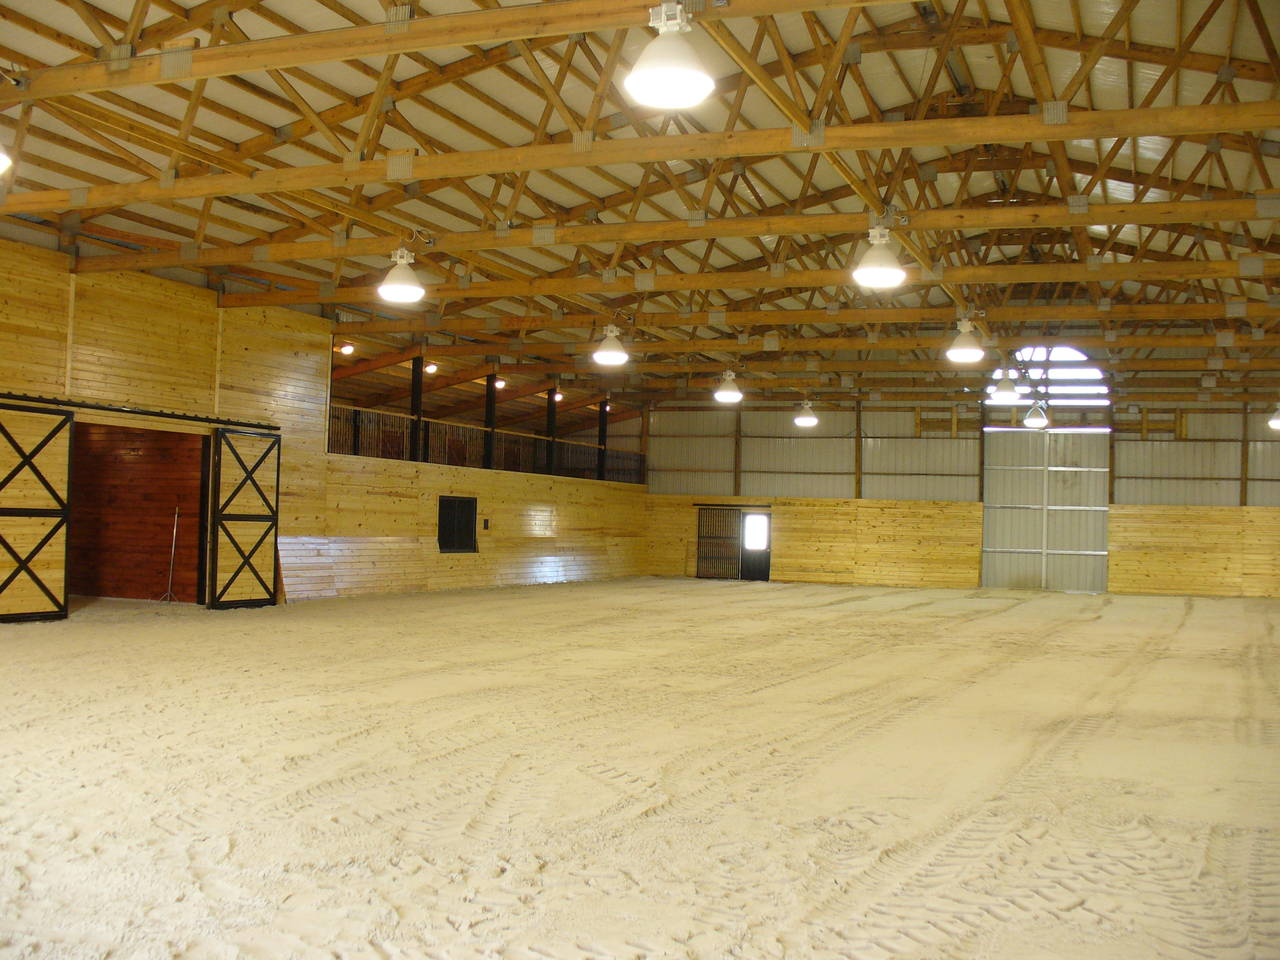 Roping Arenas Hansen Buildings